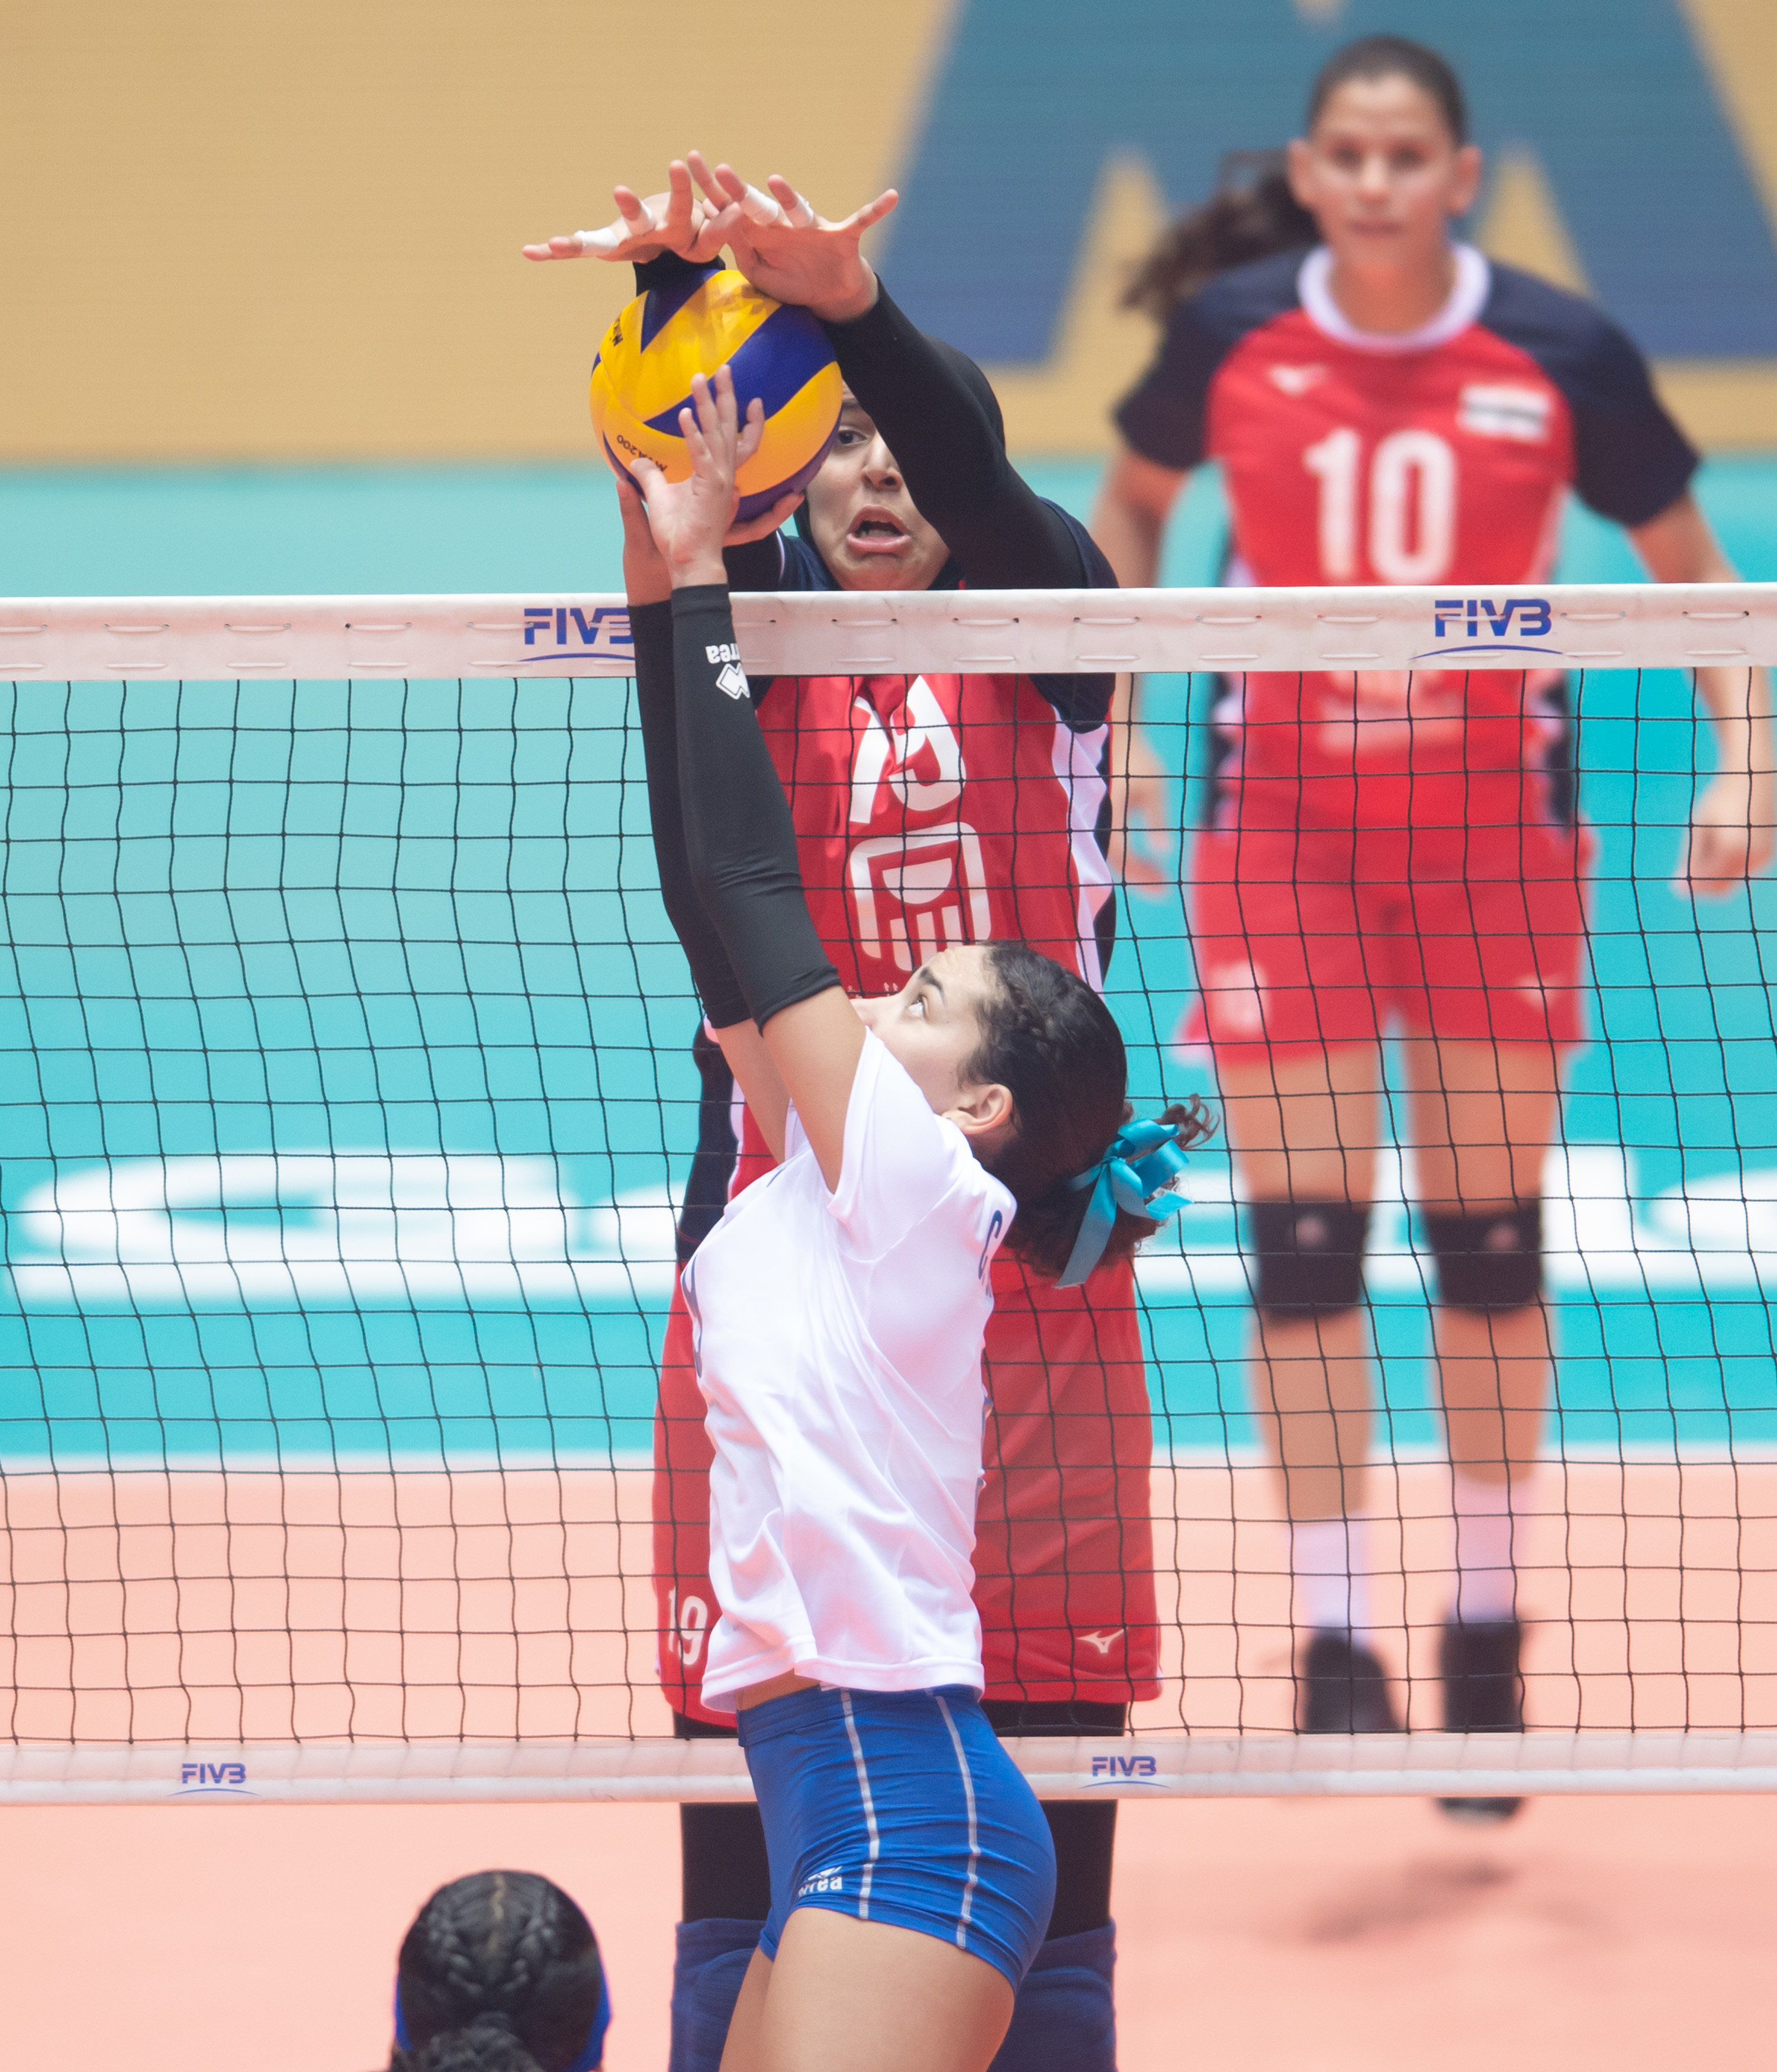 News Thrilling Openers Set The Pace In Girls U18 Worlds